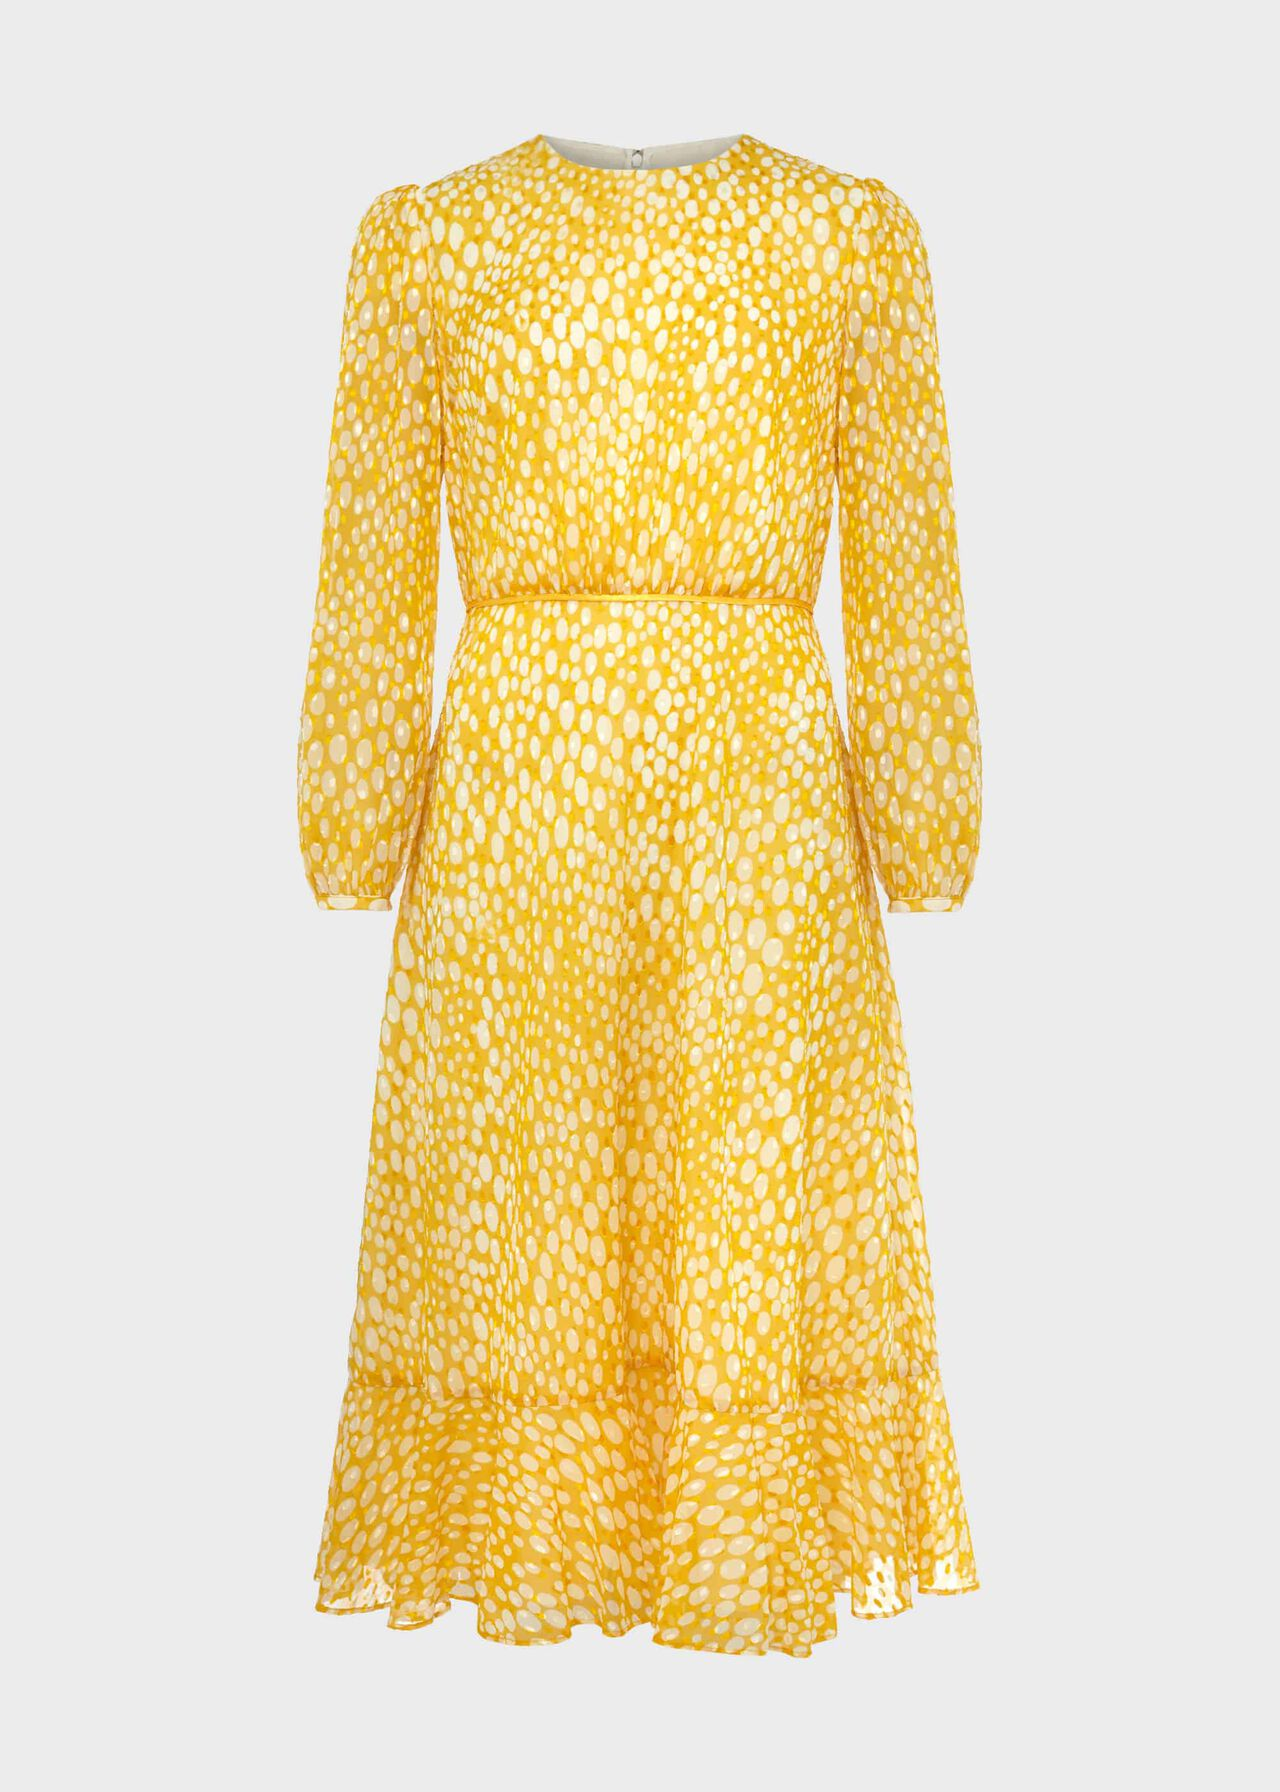 Lexi Jacquard Dress Yellow Ivory